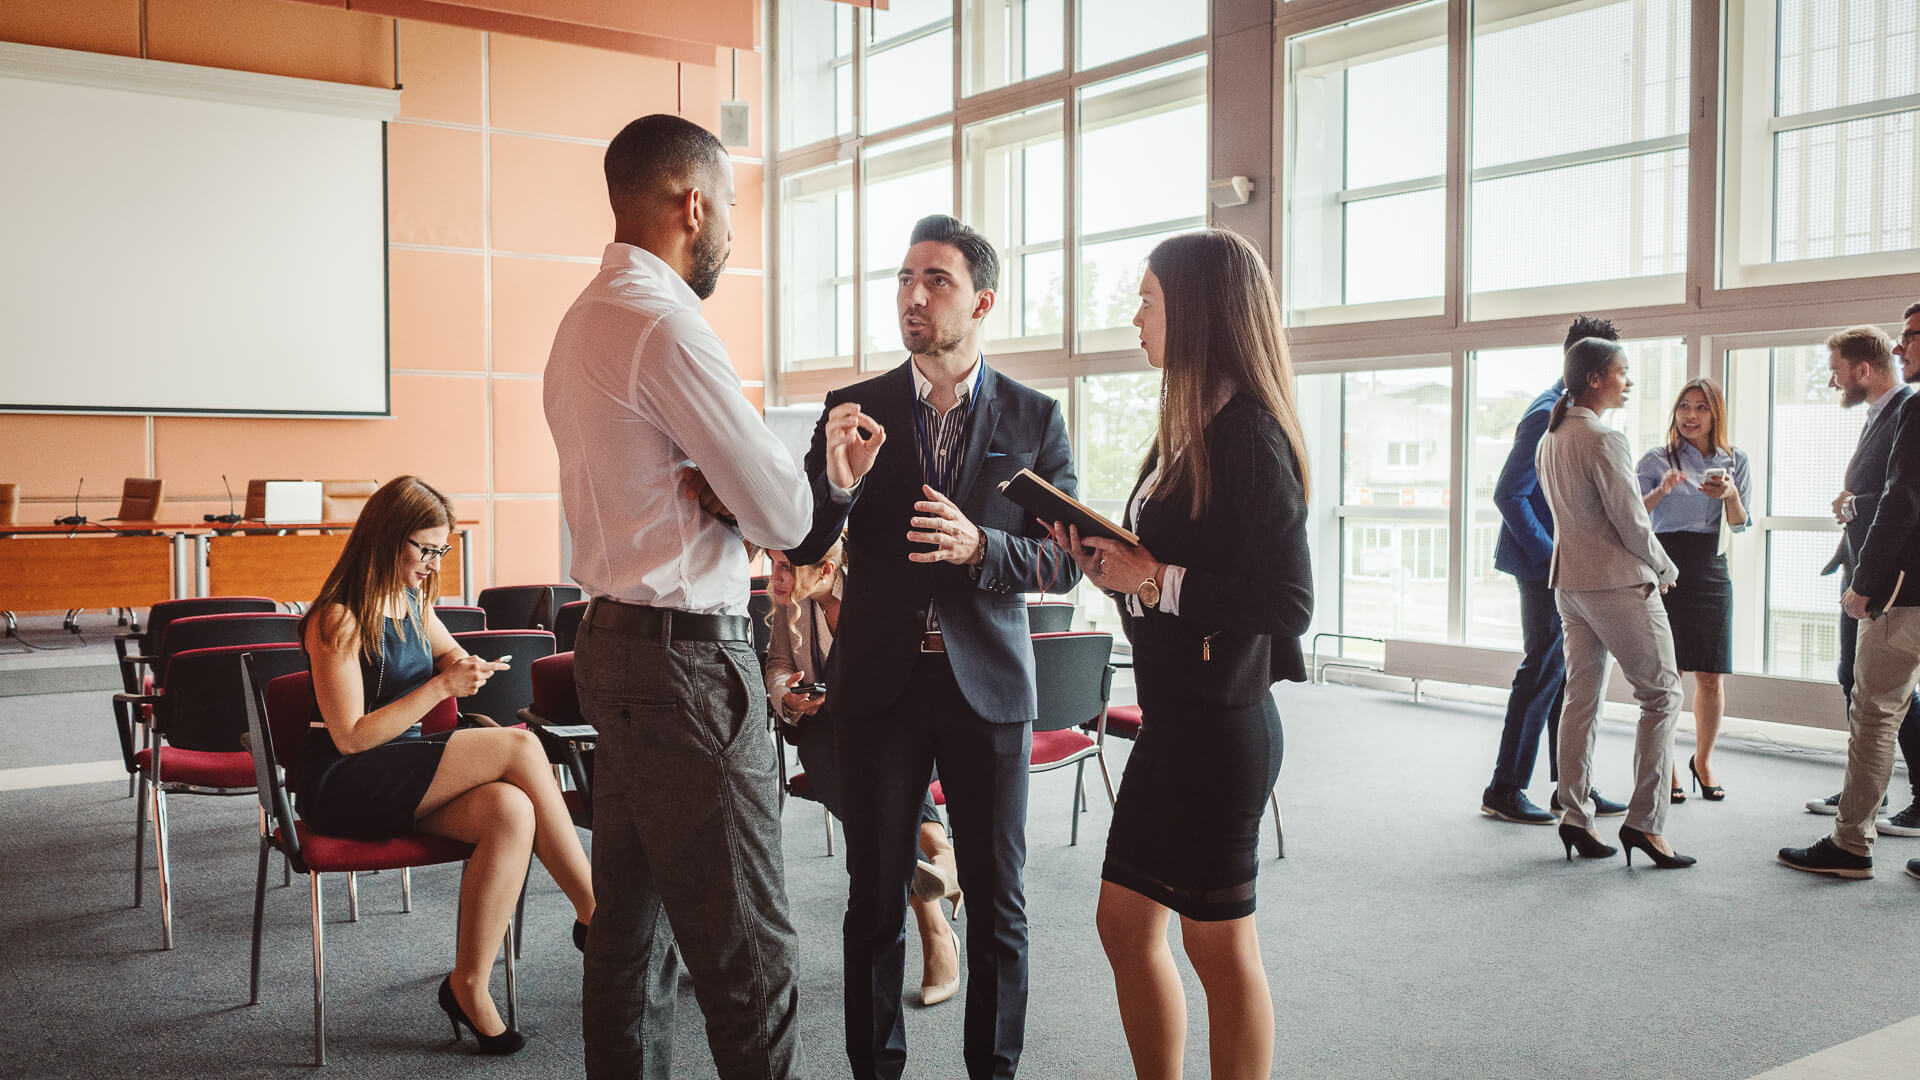 17 Simple Ways To Master Networking, According to Science